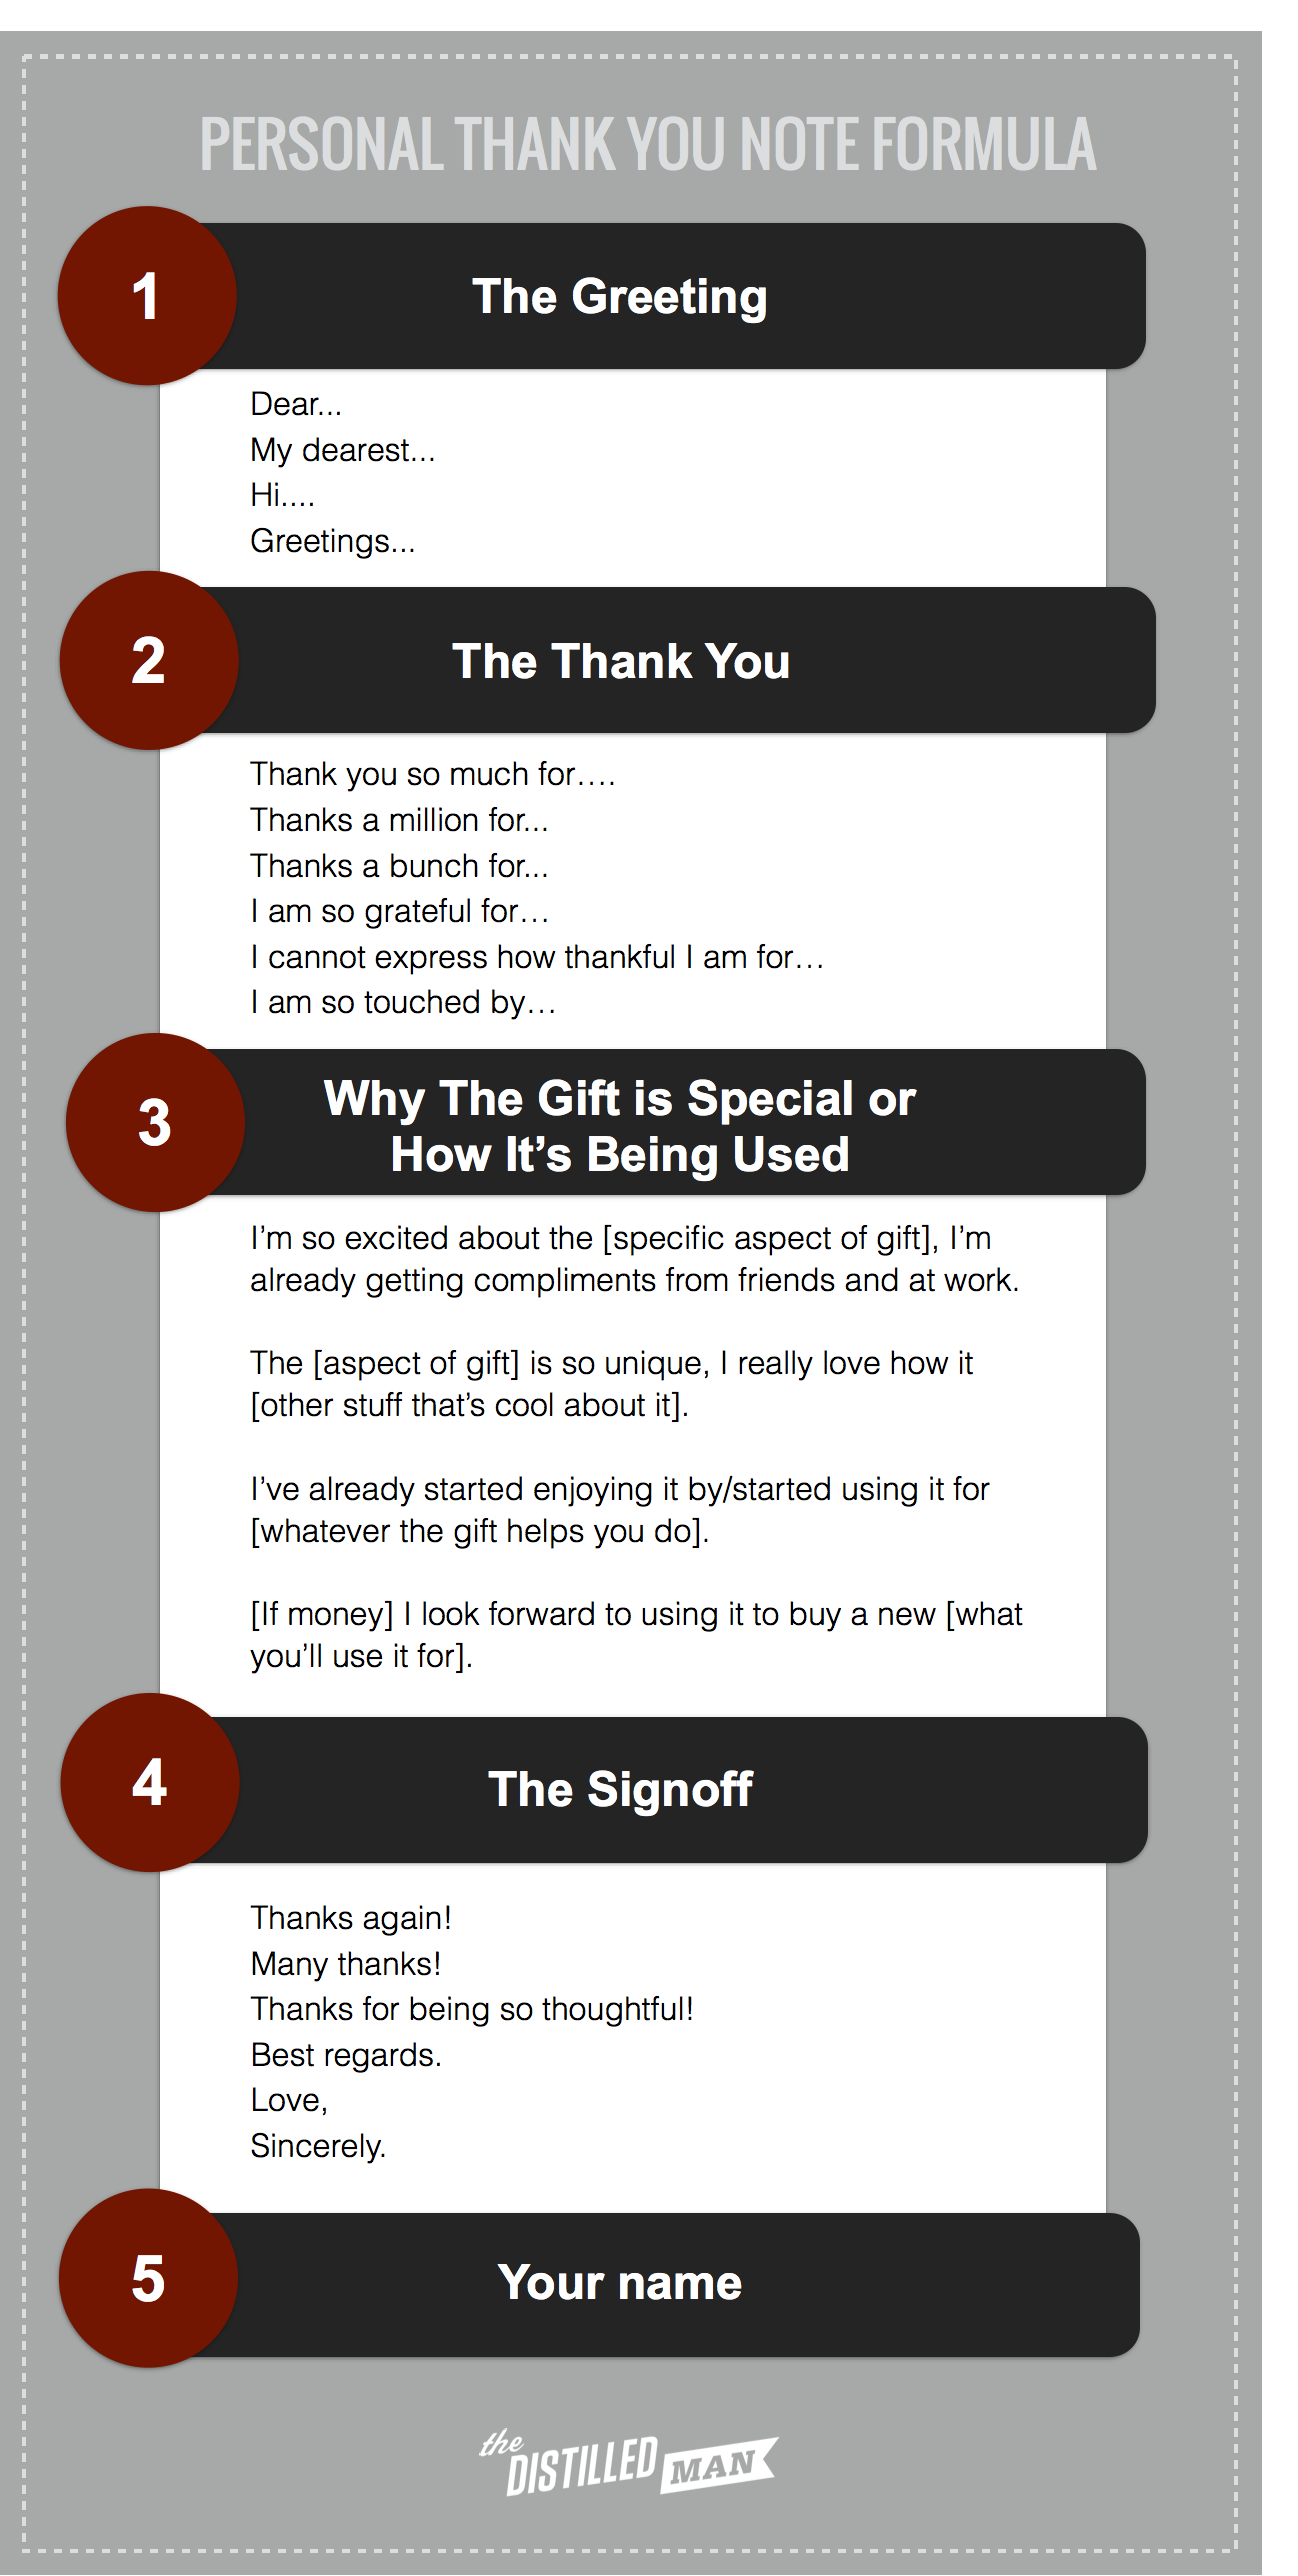 The simple 5-part thank you note formula includes: the greeting, the thank you, why the gift is special or how it's being used, the sign-off, and your name